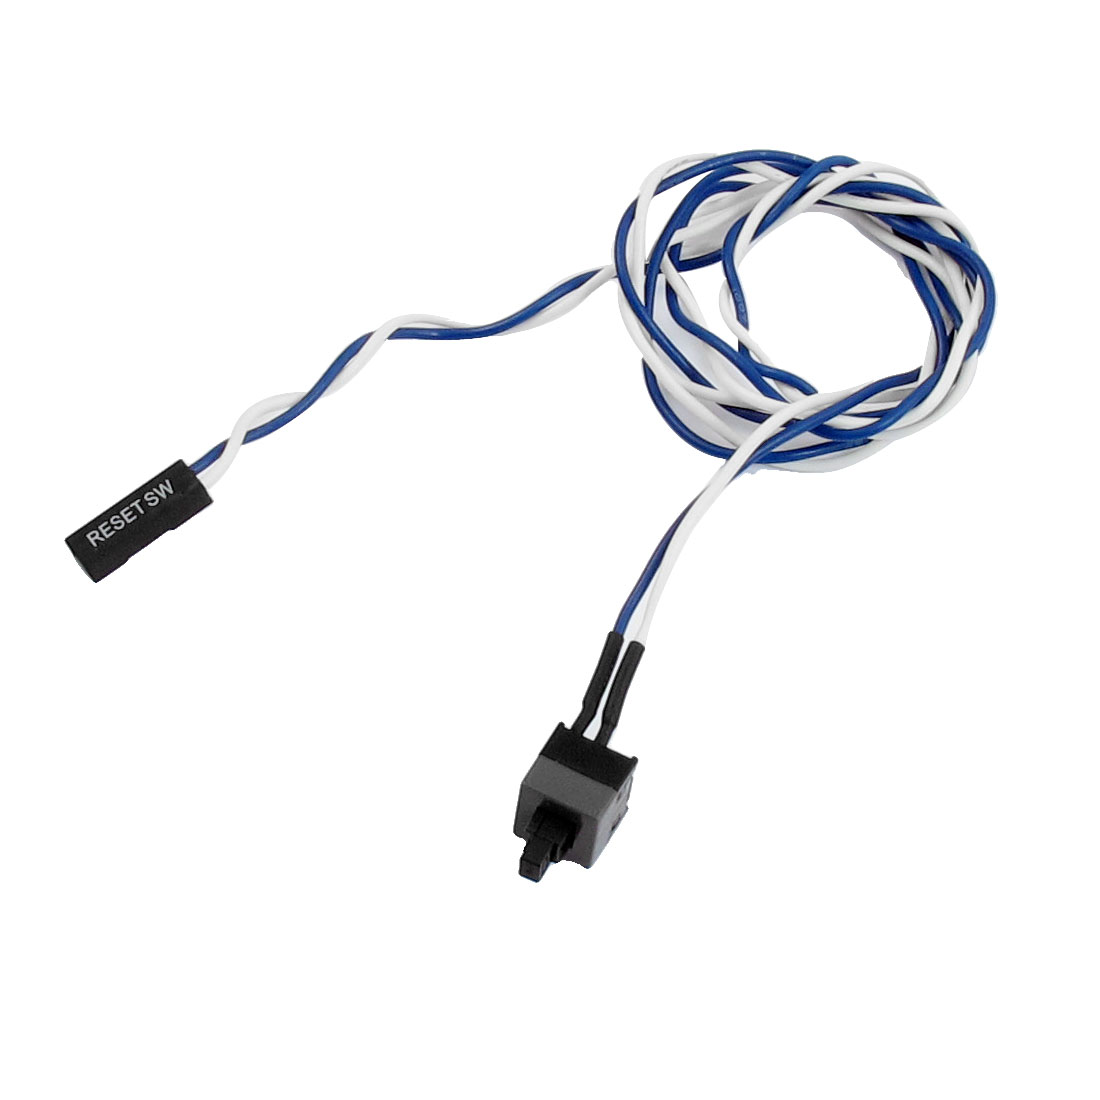 "Blue White 22.8"" Length Cable ATX Power On Supply Reset Switch Cable"